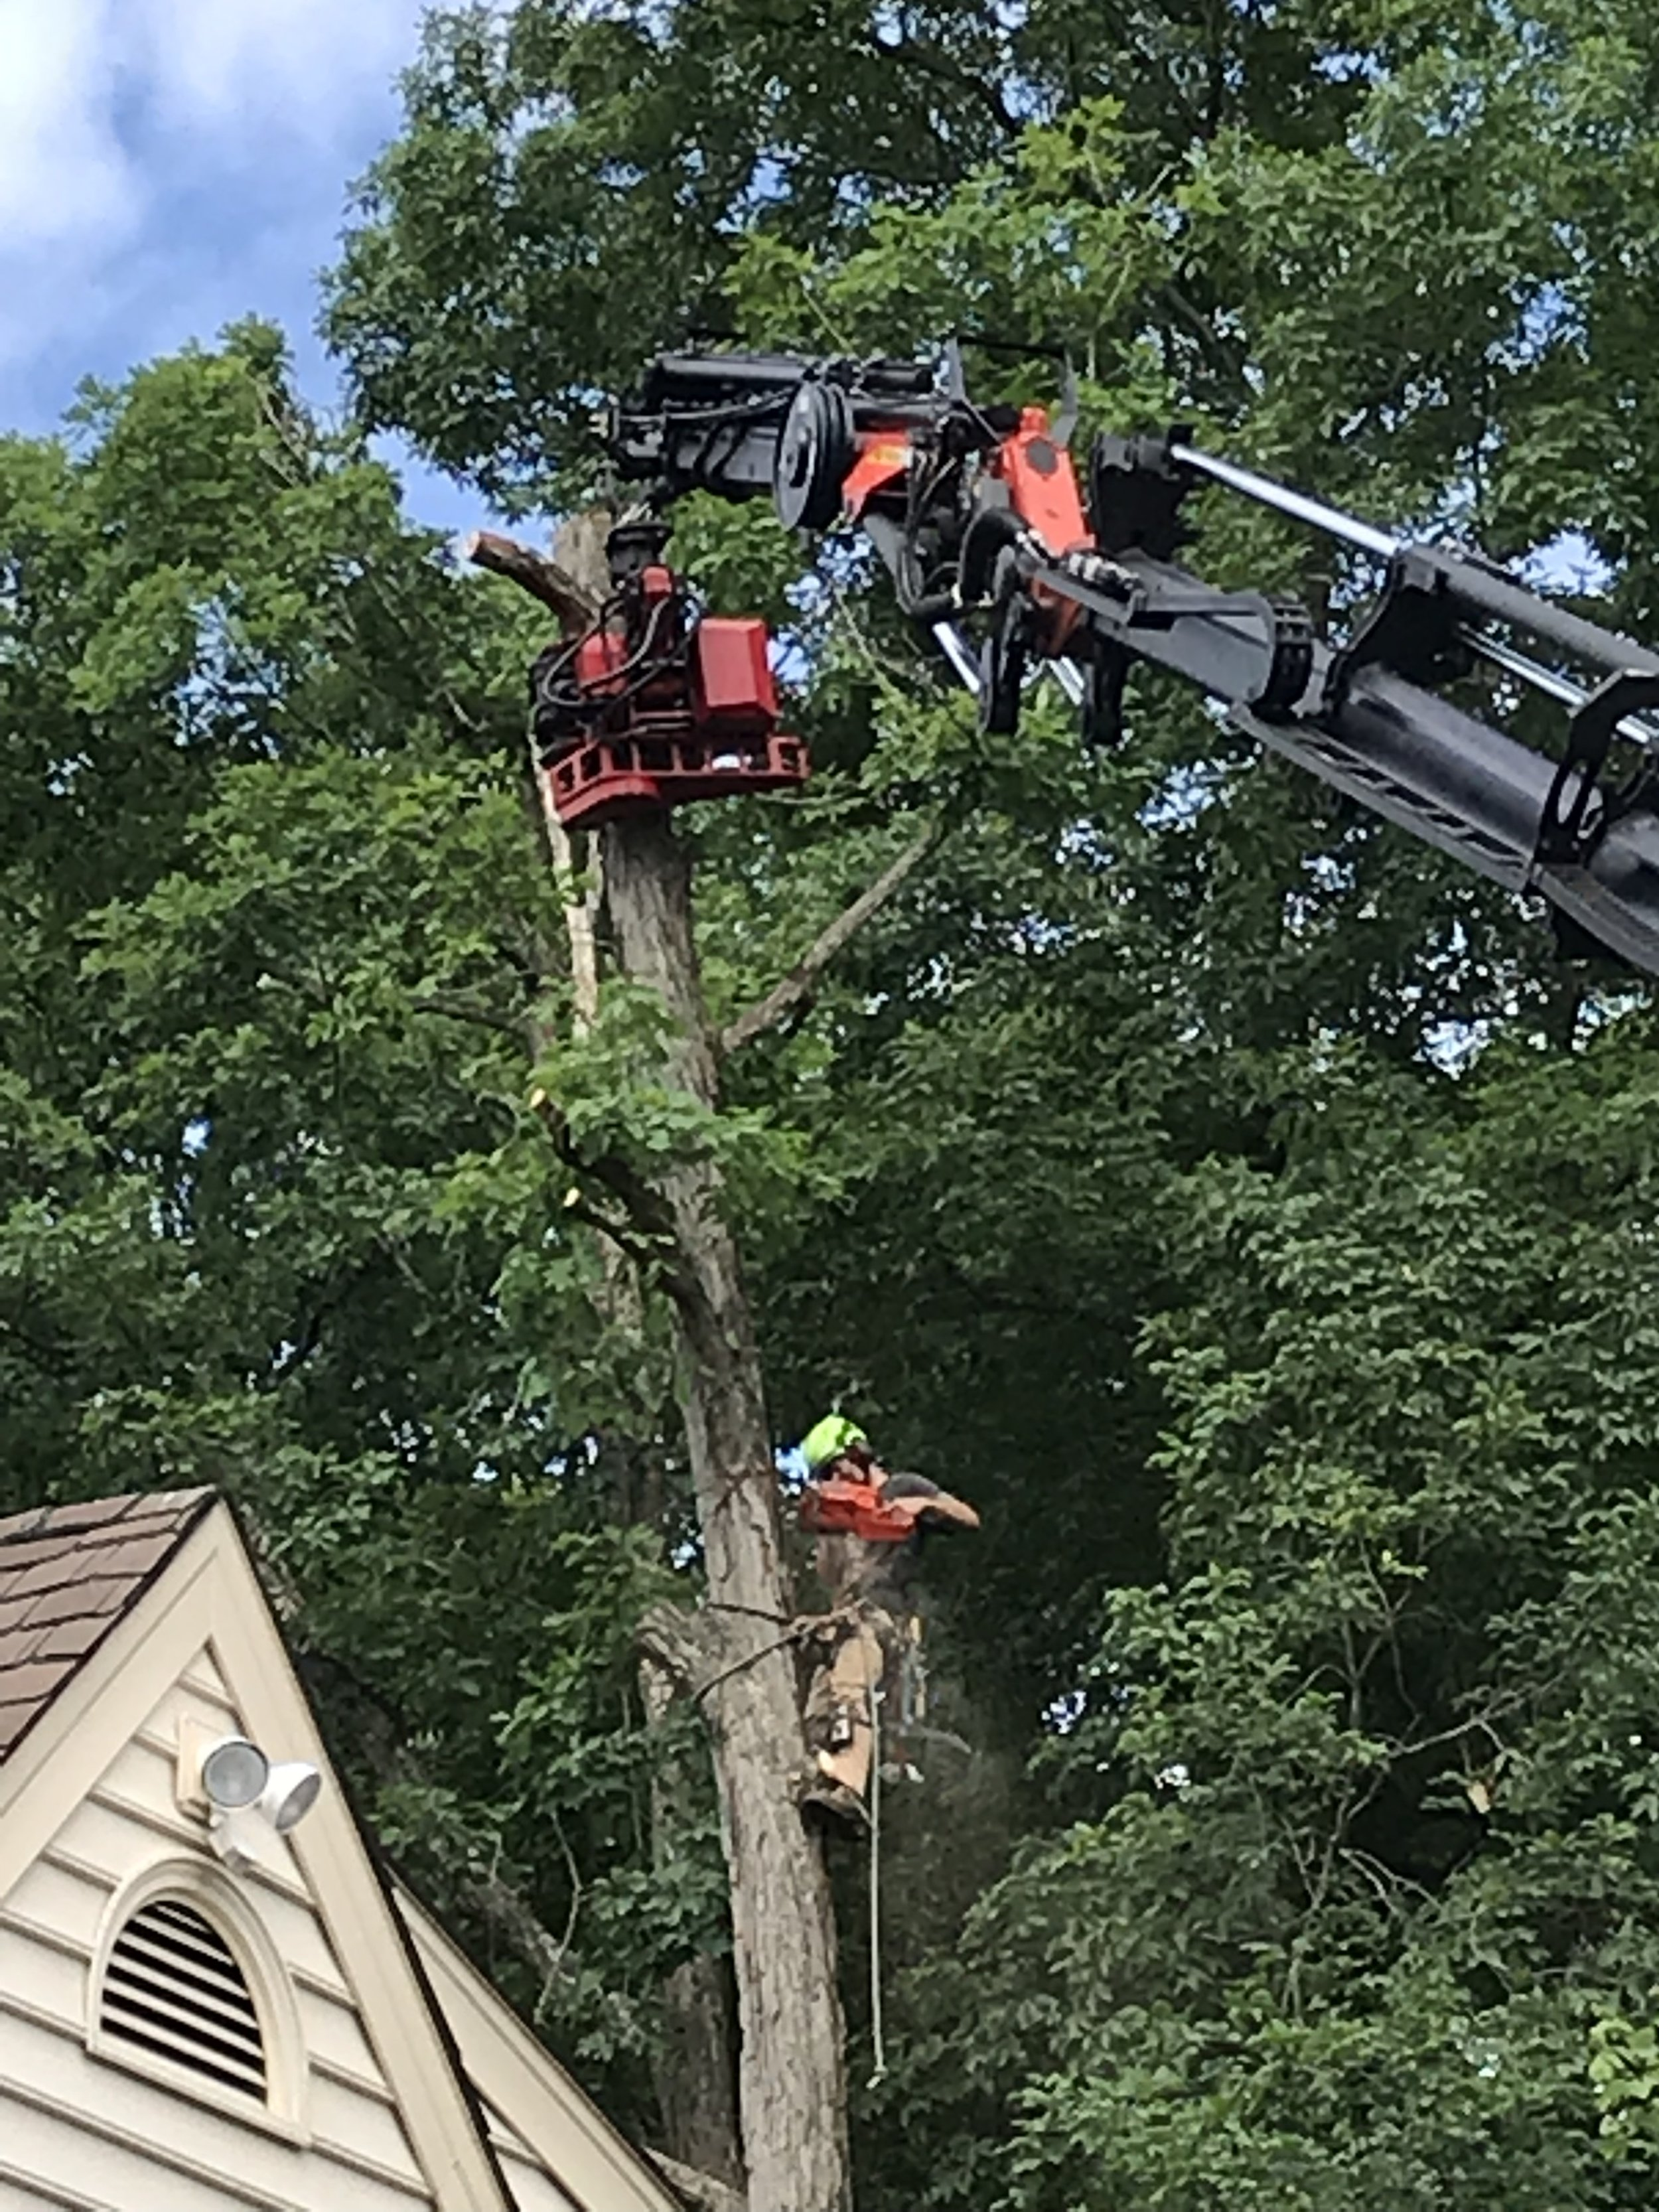 The other day we removed a White Oak in Clifton, VA. There was evidence of root rot and dieback in the crown. Homeowner decided that it was too close to the house to hang on to.